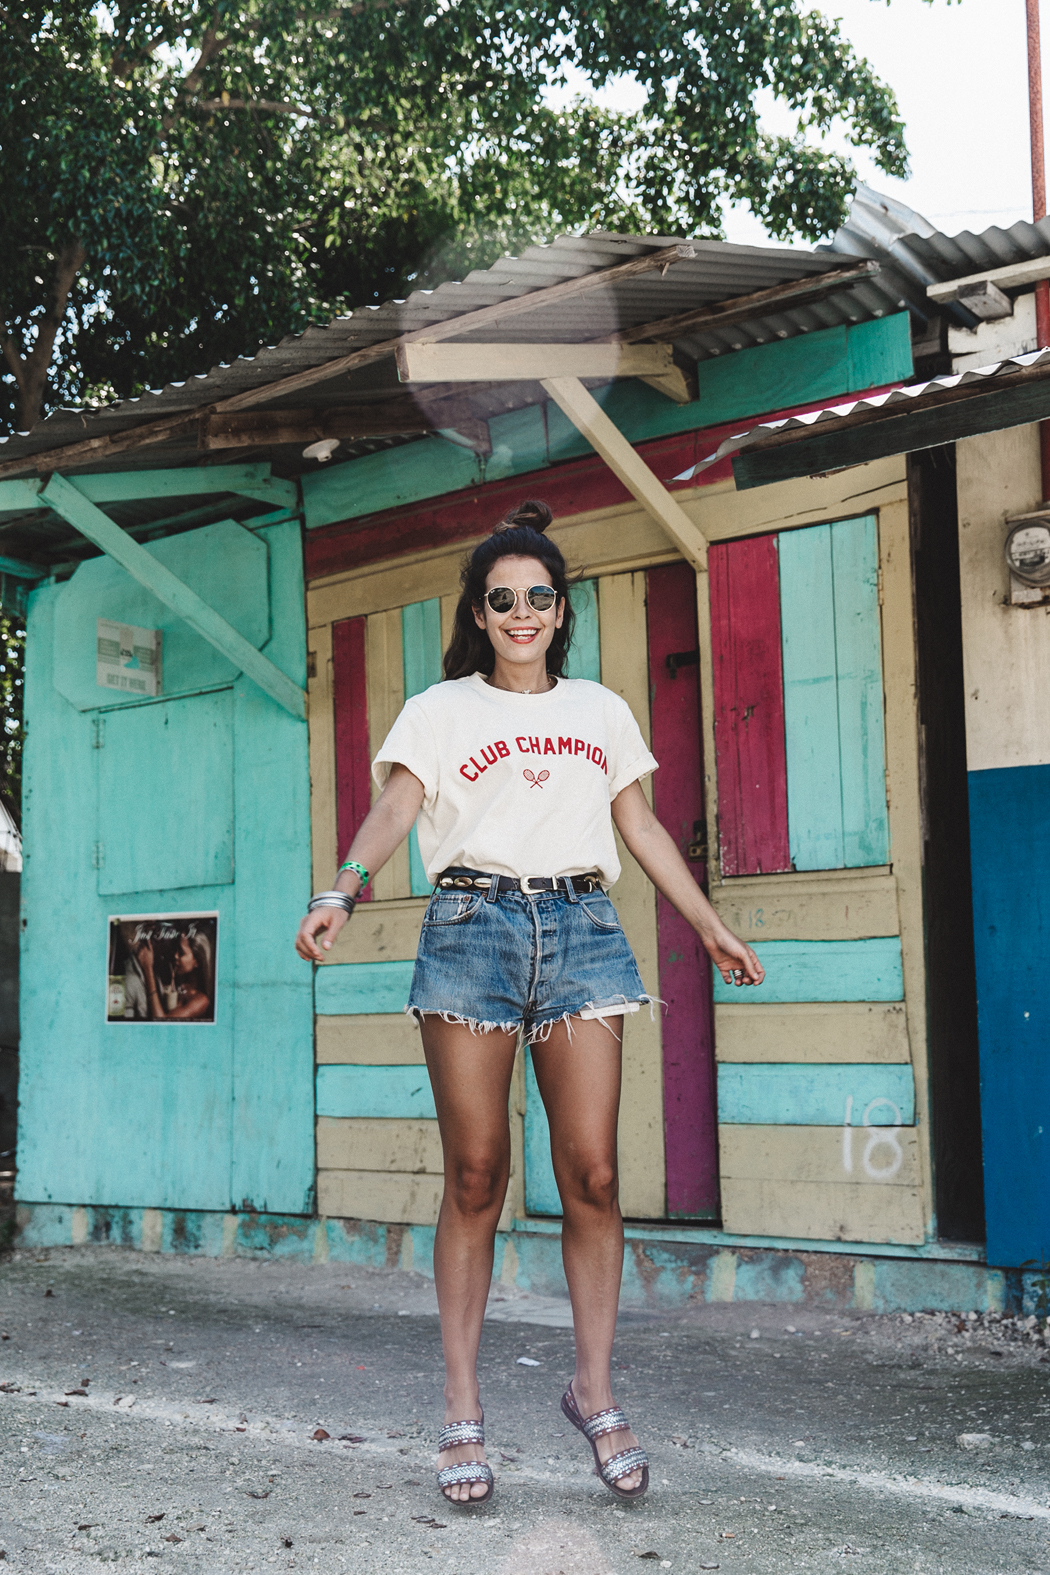 Jamica-Sugar_Cane_Field-Levis-Straw_Hat-Reebok_Tee-Outfit-Summer-Collage_on_The_Road-Bamboo_Walls-79